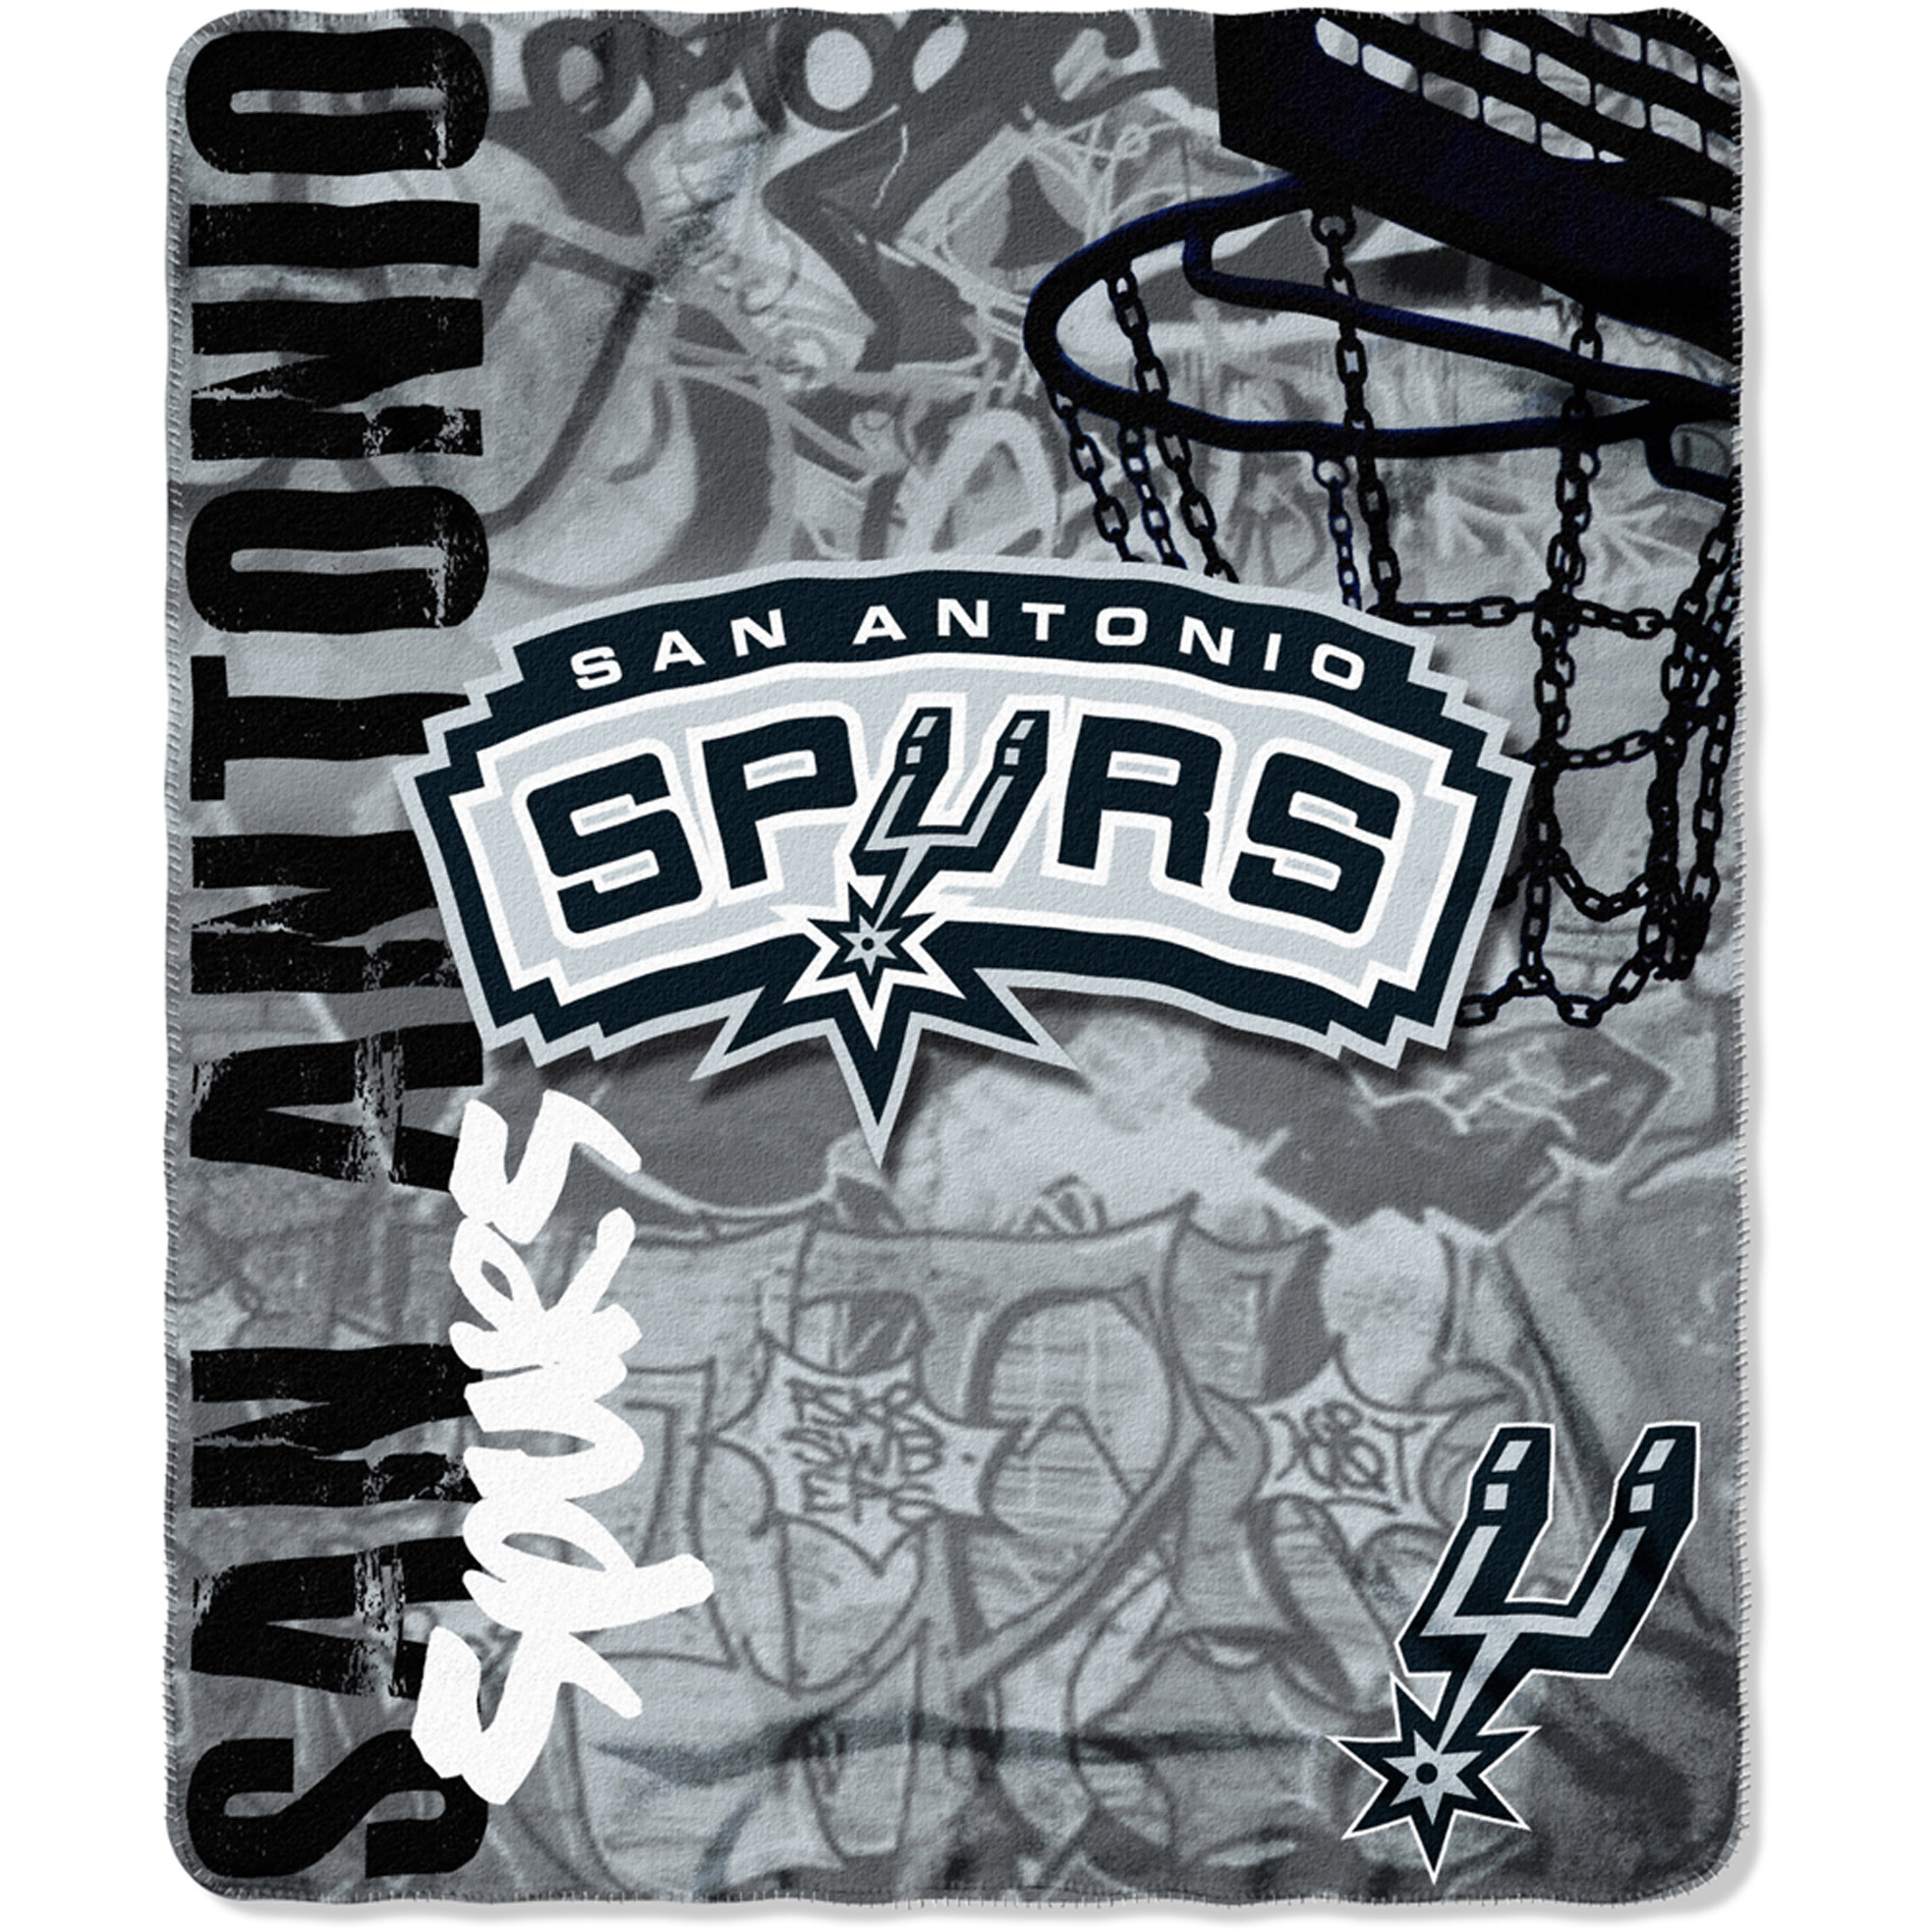 buy online 27602 93a85 San Antonio Spurs Team Shop - Walmart.com